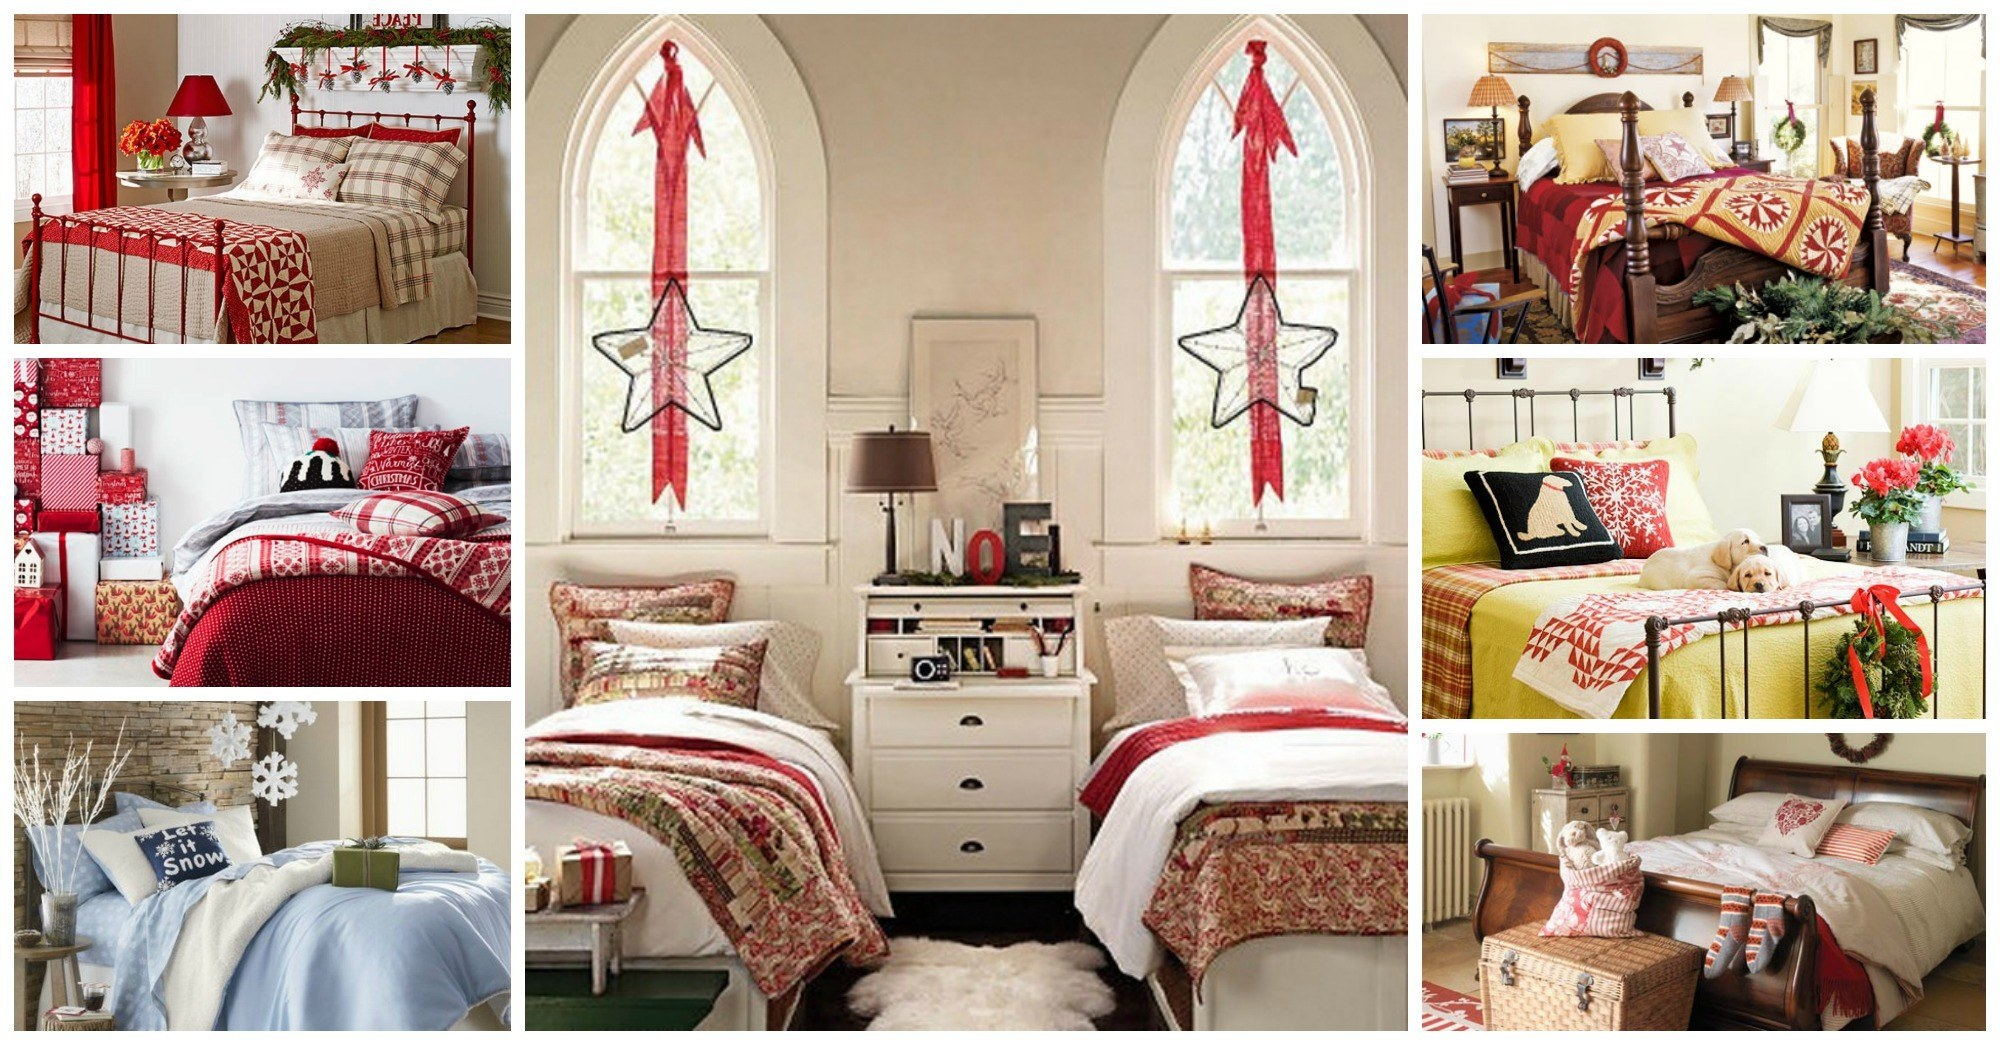 10 Amazing Ideas of How to Decorate Your Bedroom for Christmas